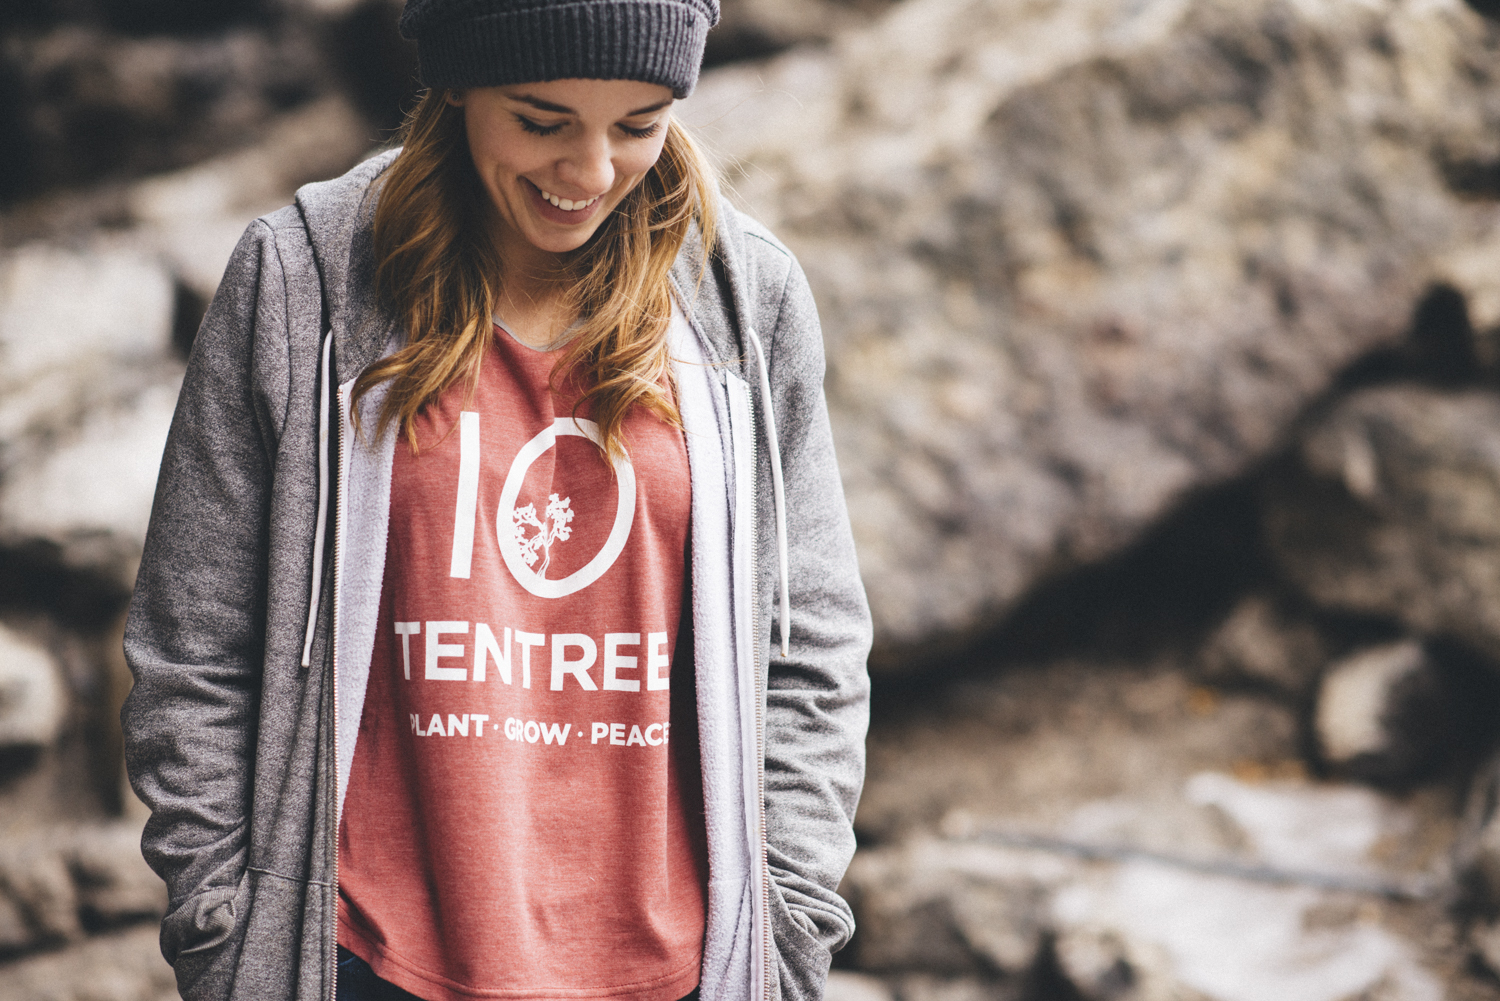 Stay Sustainable & Stay Trendy